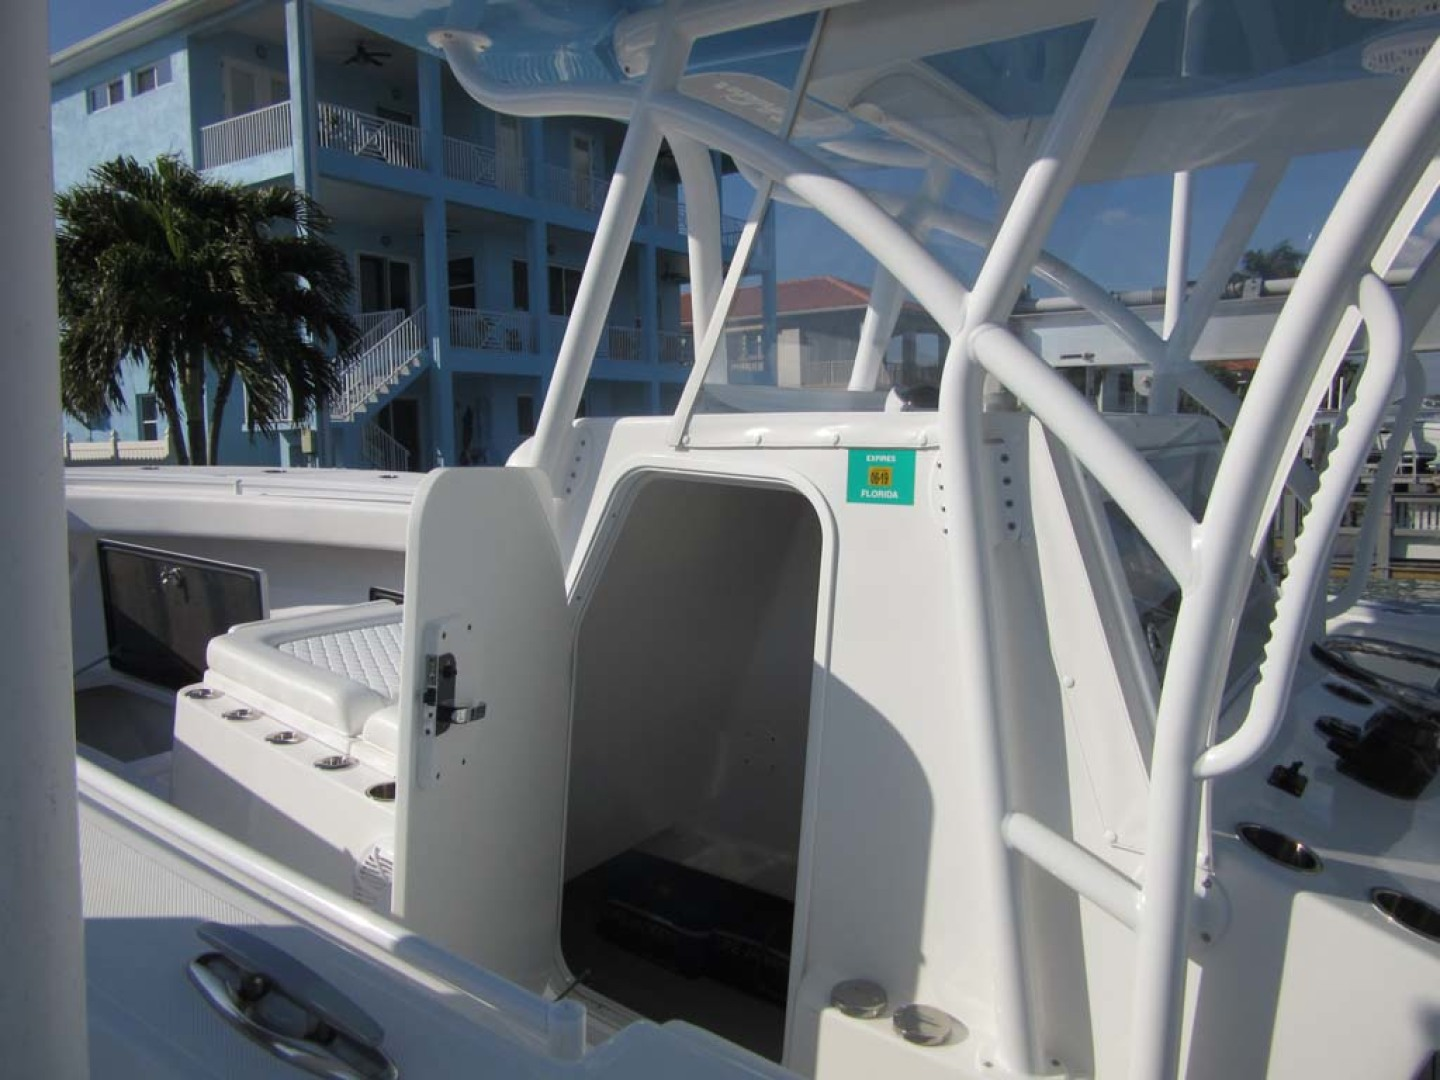 SeaHunter-39 Center Console 2017-SQUEEZE PLAY II Madeira Beach-Florida-United States-Console-1117896 | Thumbnail